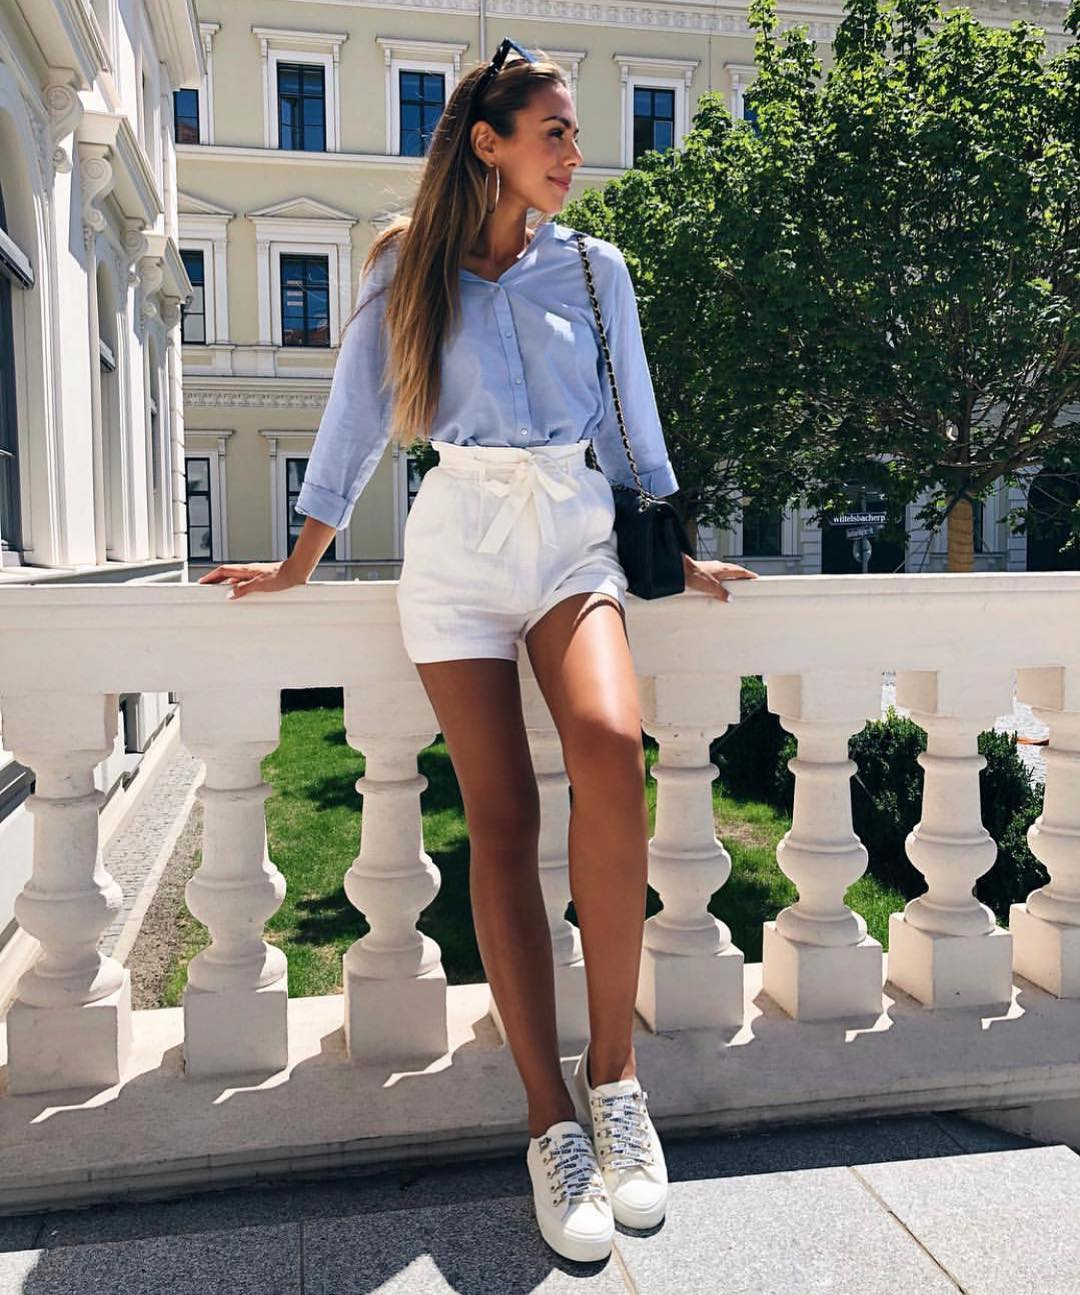 Summer Essentials: Blue Shirt With Gathered White Shorts And White Kicks 2019